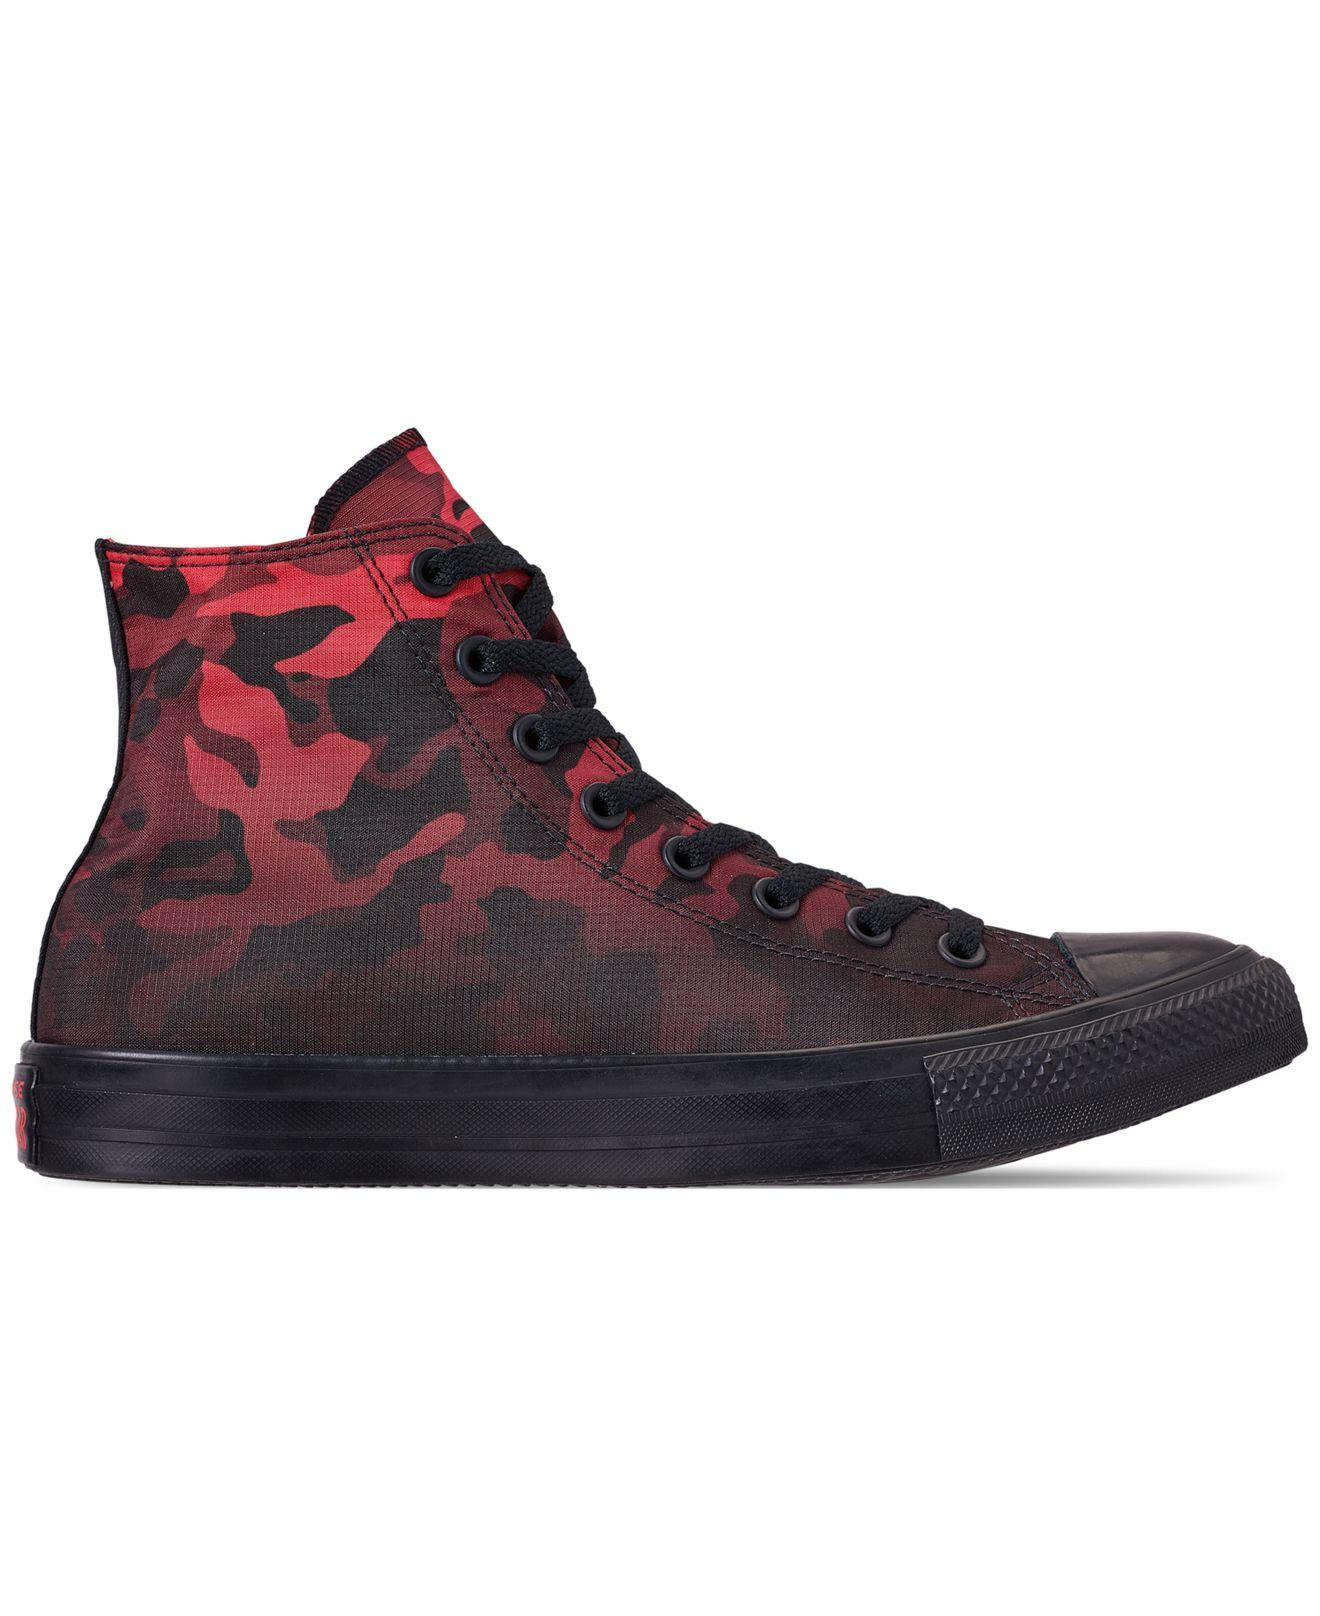 aacd9052d426 Lyst - Converse Chuck Taylor All Star Gradient Camo High Top Casual Sneakers  From Finish Line in Black for Men